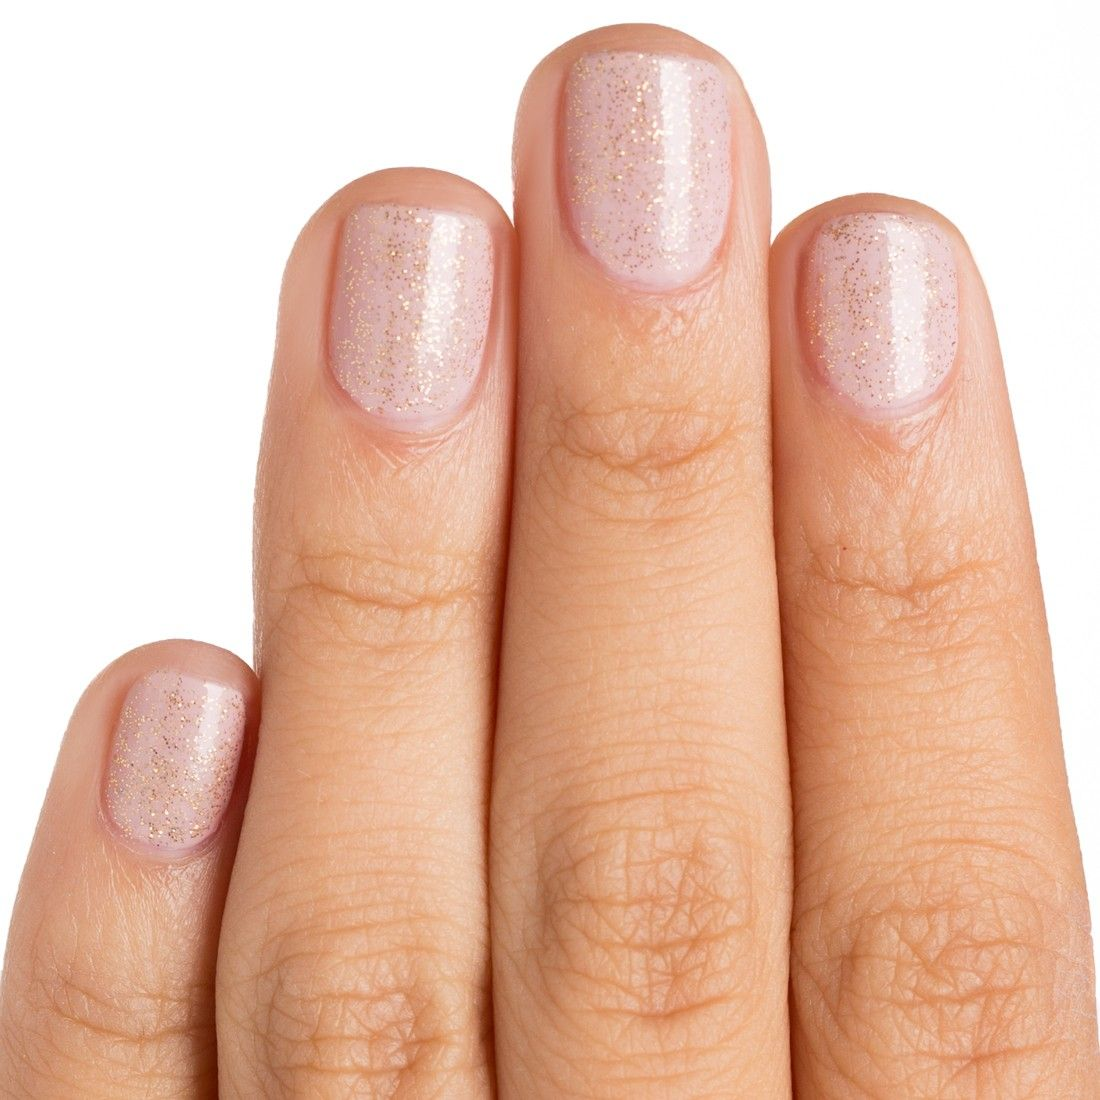 Julep Bonnie: Soft gold microglitter | And A Happy New Year ...